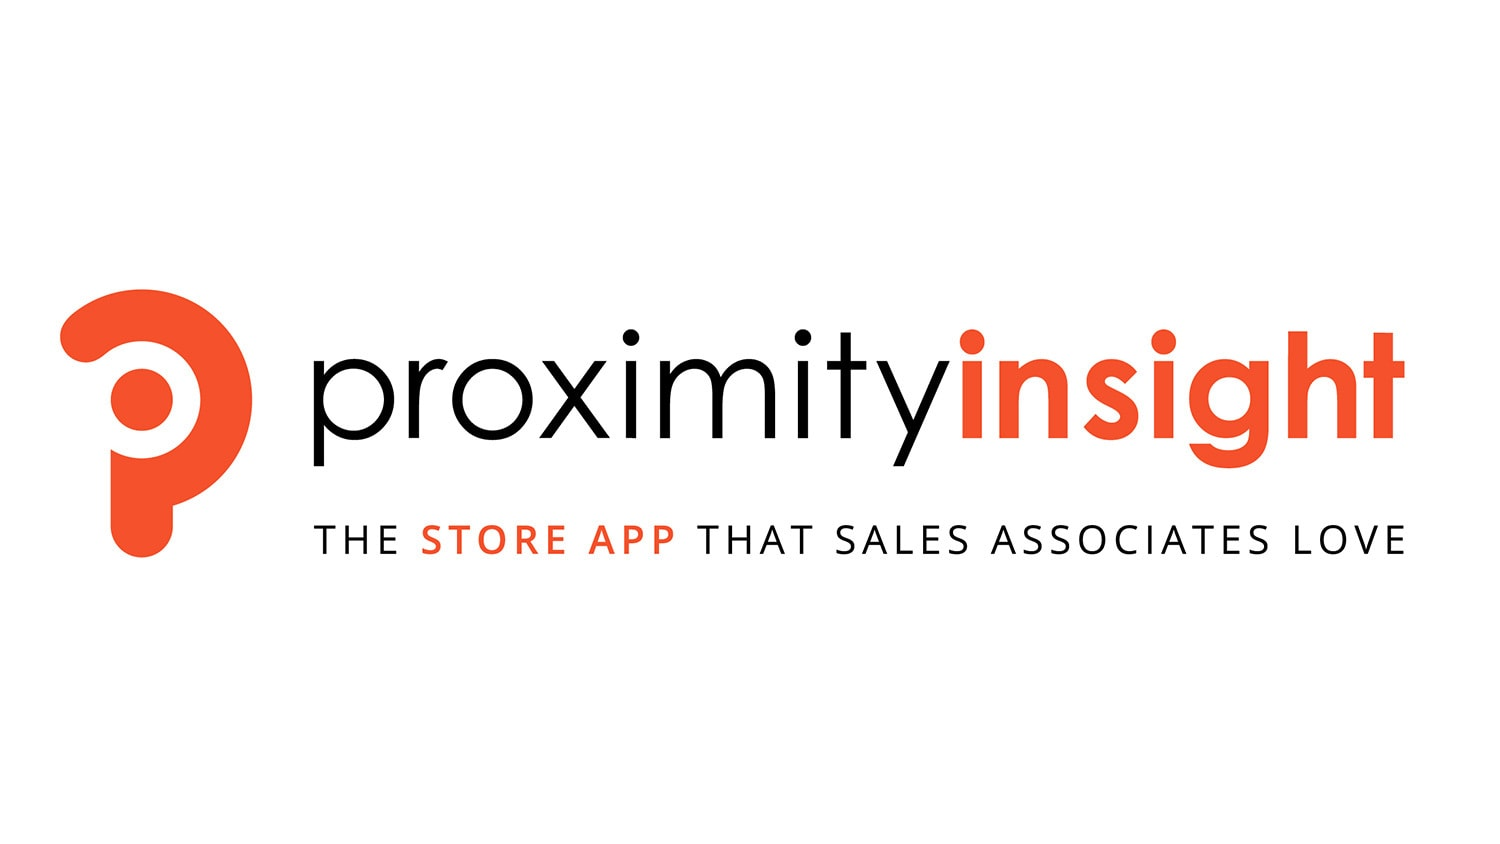 Proximity Insight landscape logo with strapline